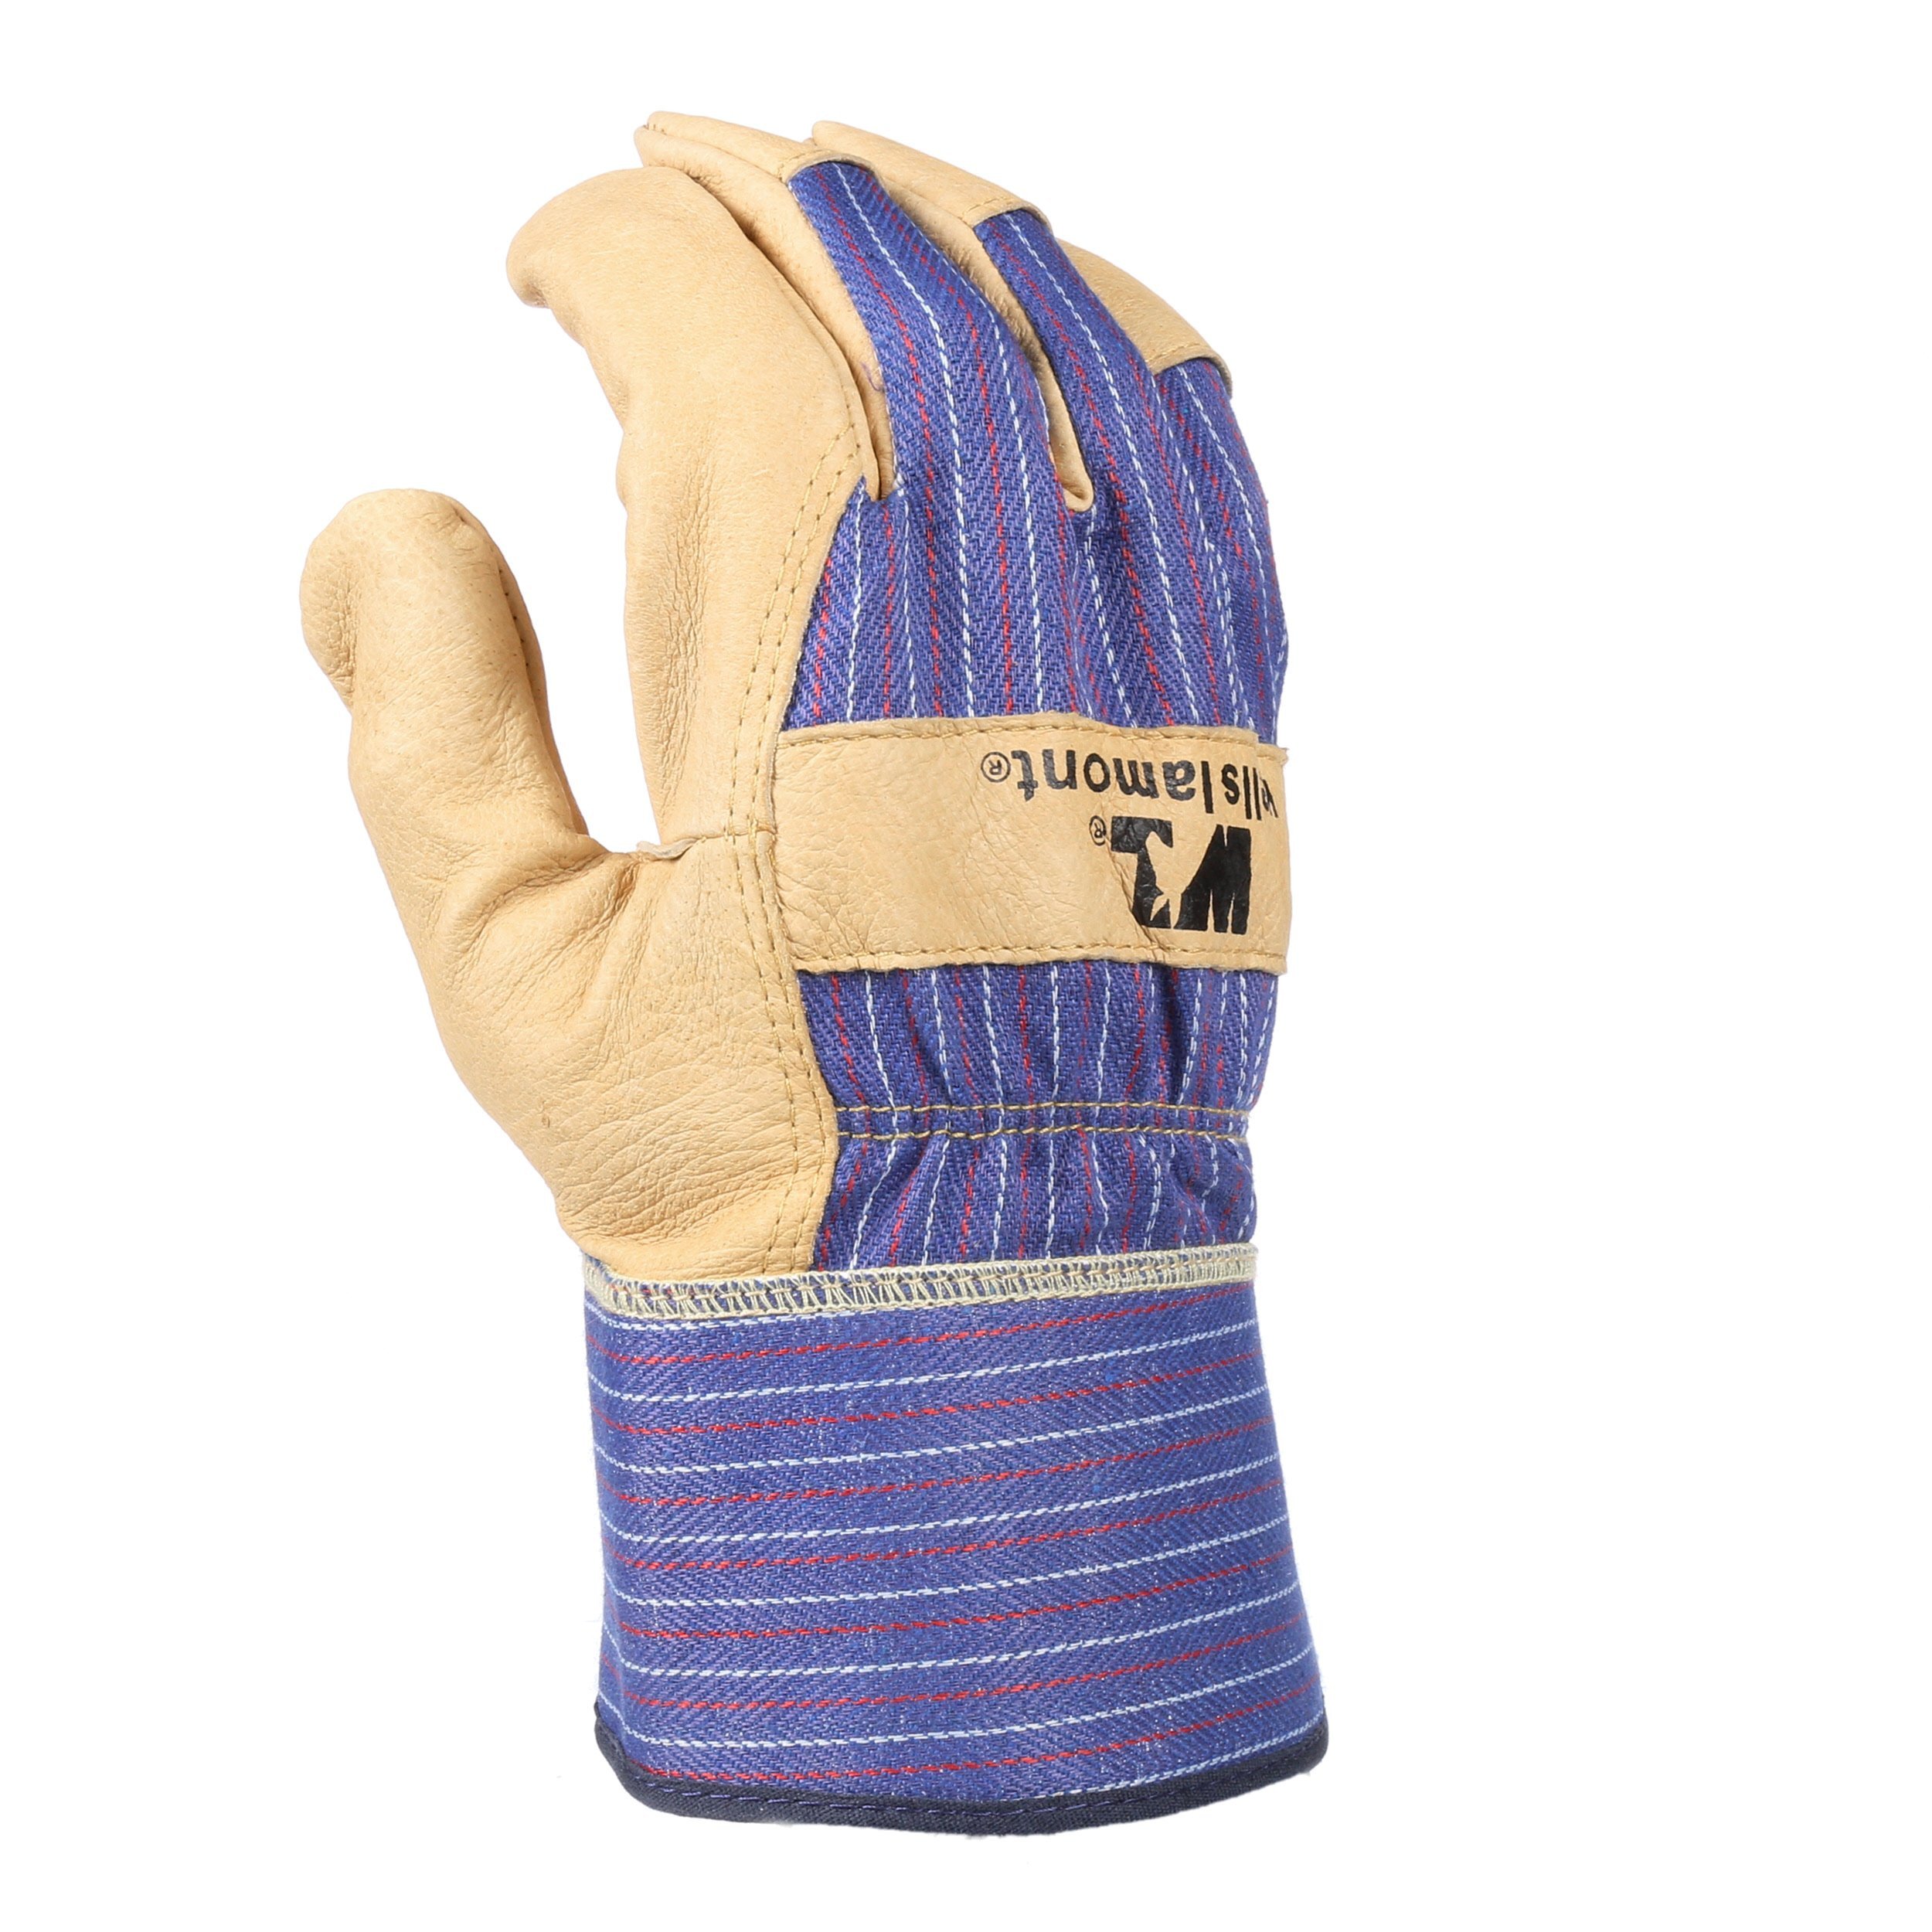 Heavy Duty Grain Leather Work Gloves with Safety Cuff, Leather Palm, Extra Large (Wells Lamont 3300XL)